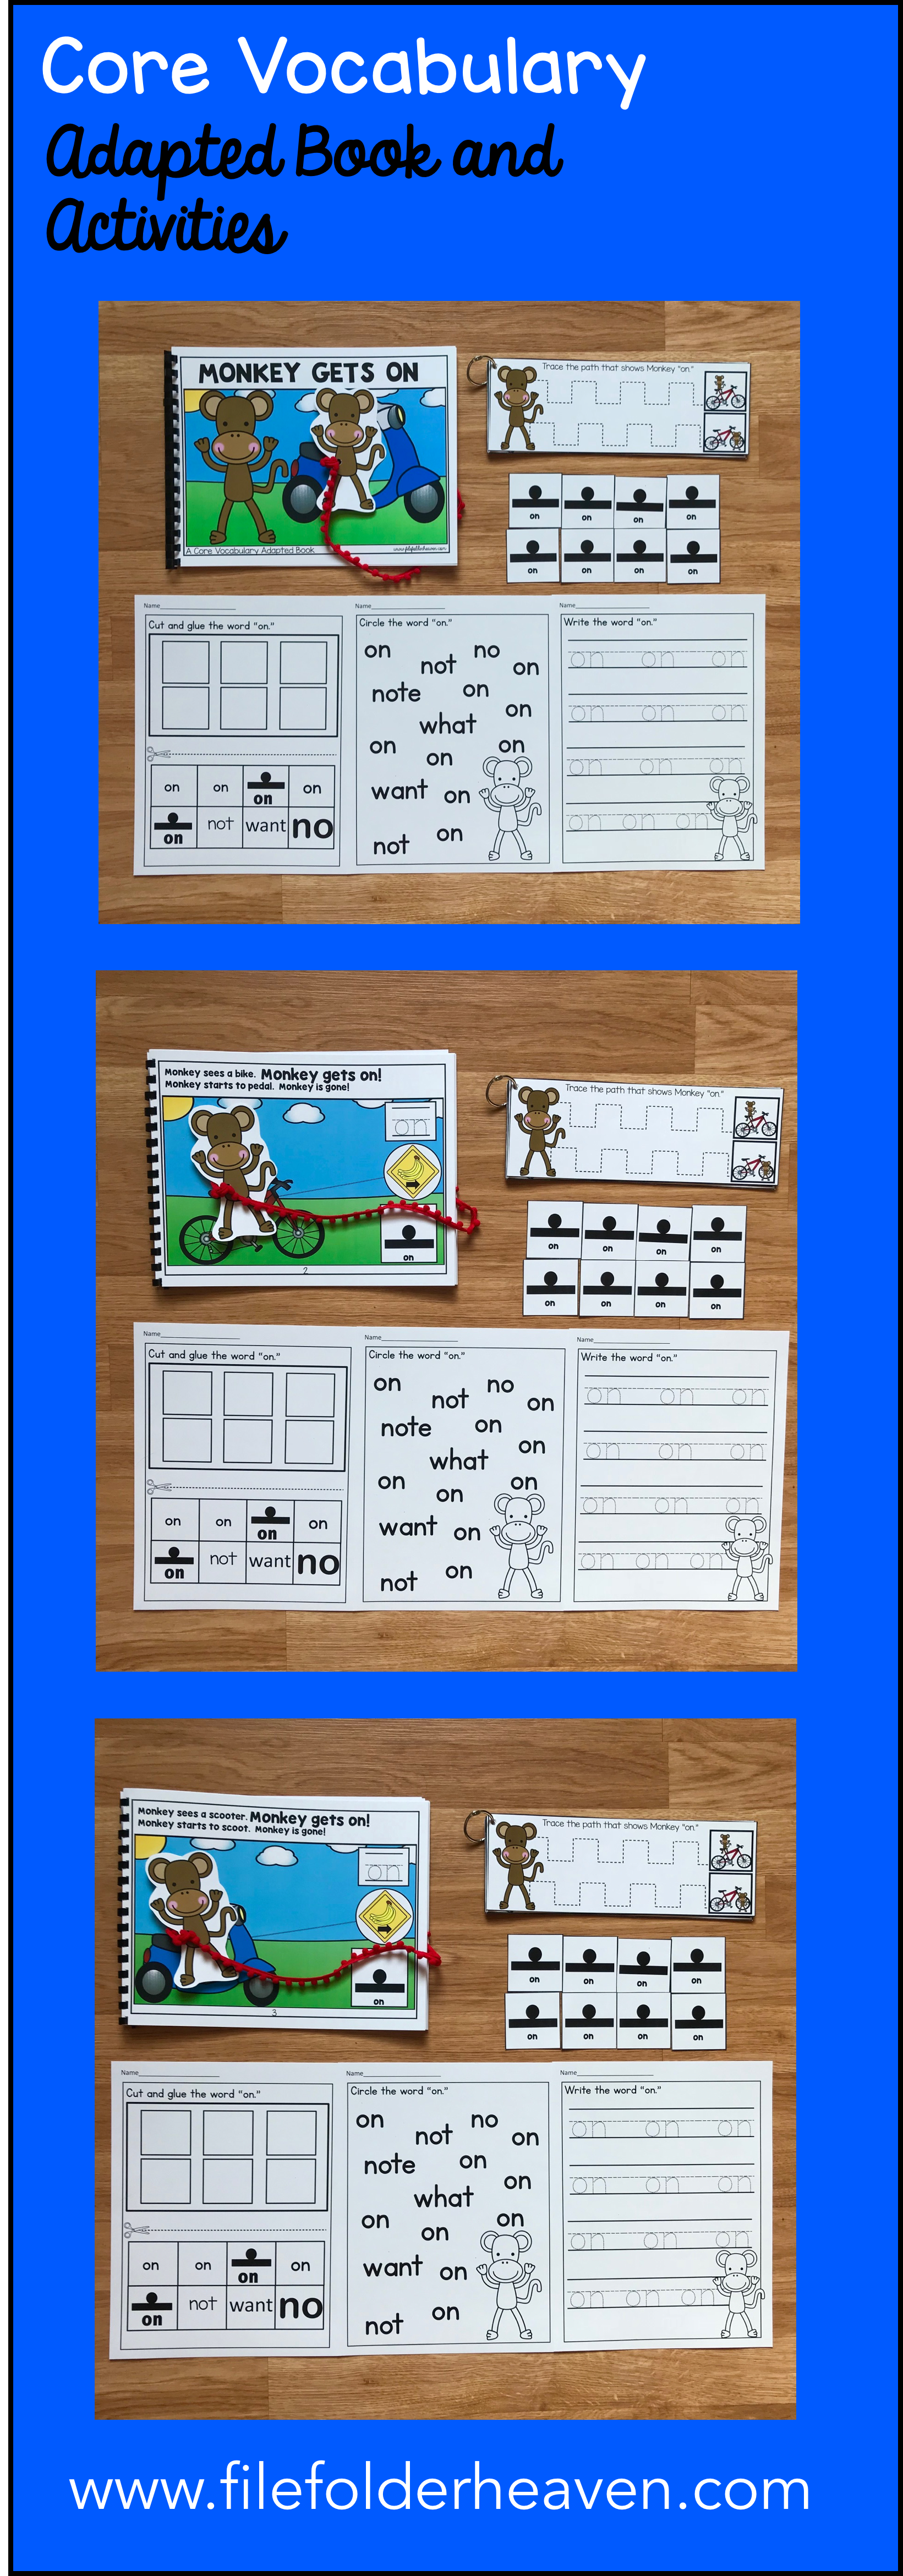 This Core Vocabulary Adapted Book Monkey Gets On Is A